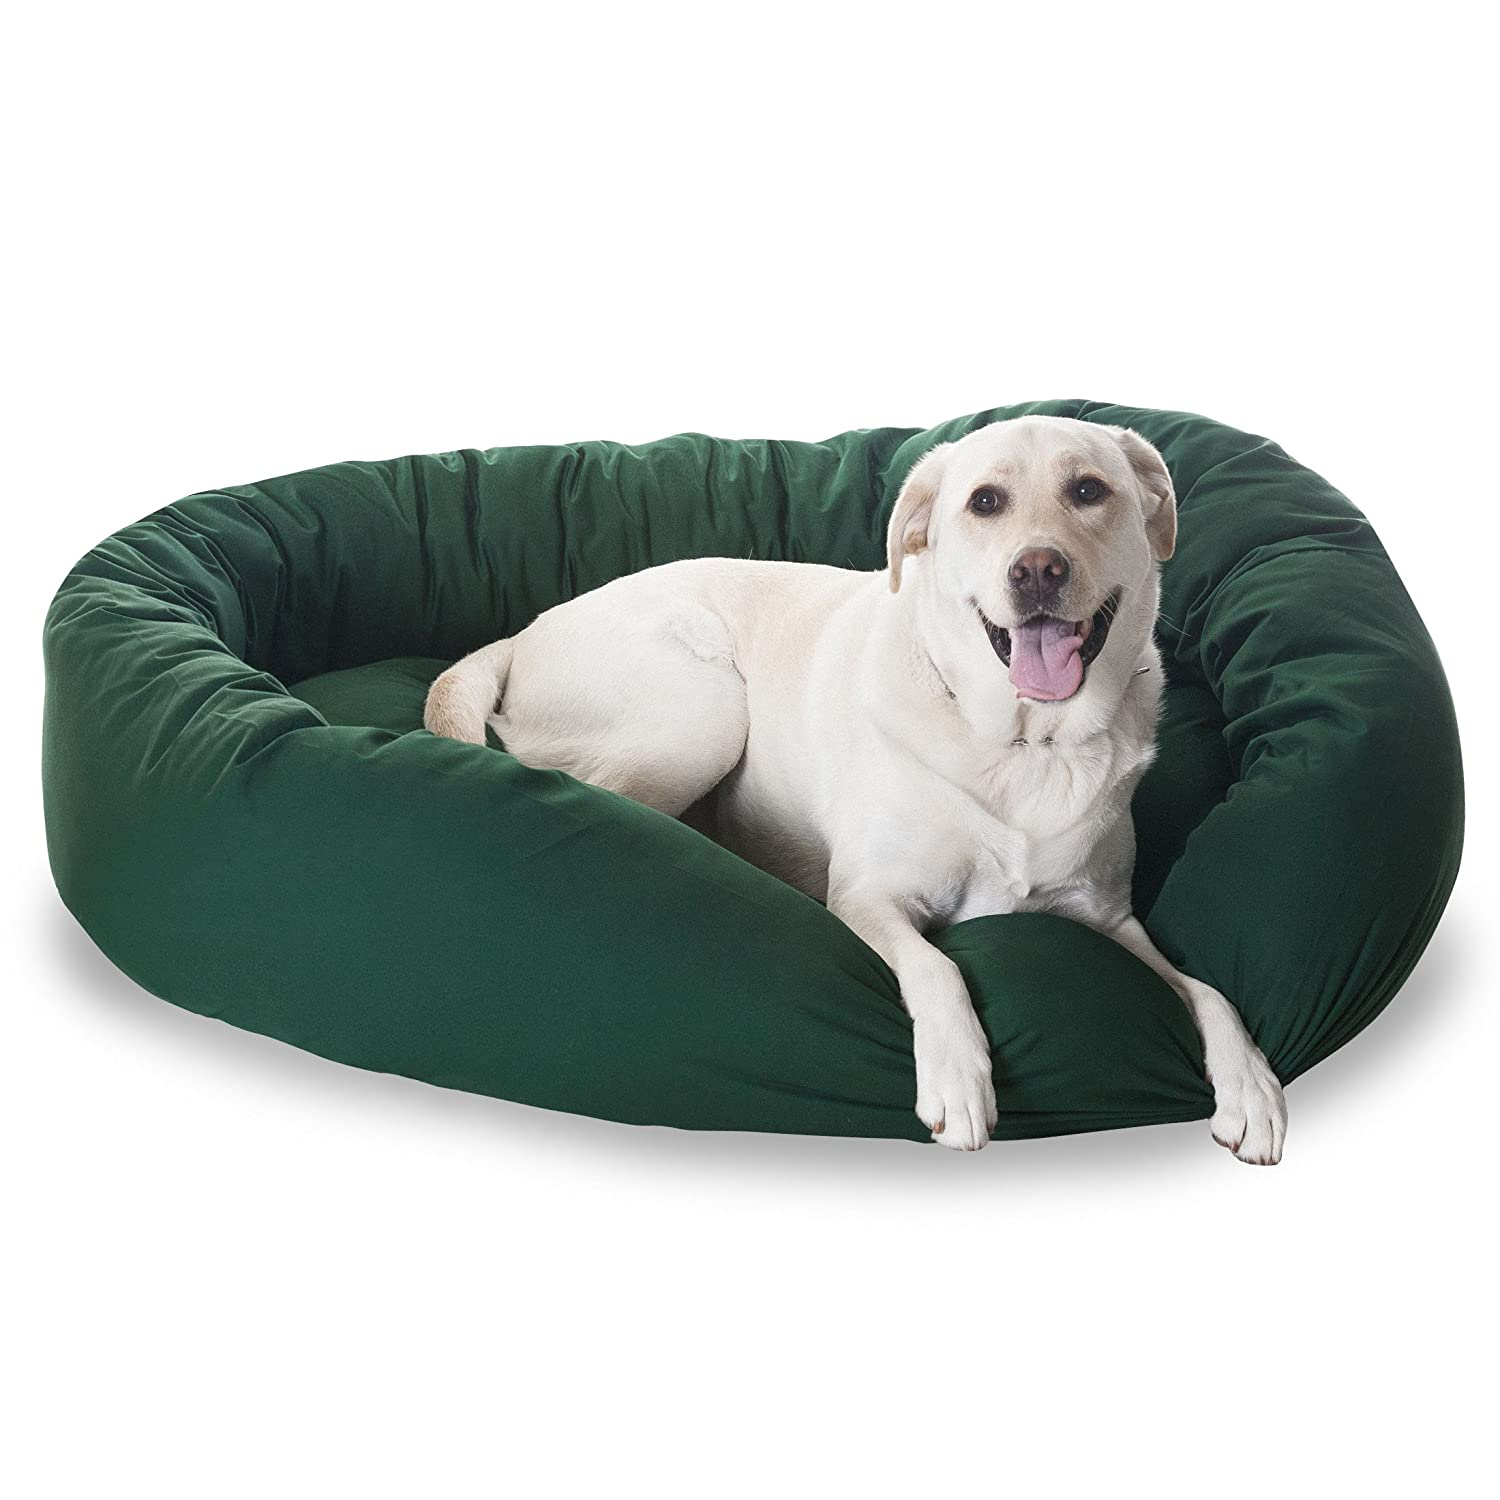 Green 52-inch Green 52-inch Majestic Pet 52 Inch Green Bagel Dog Bed By Products